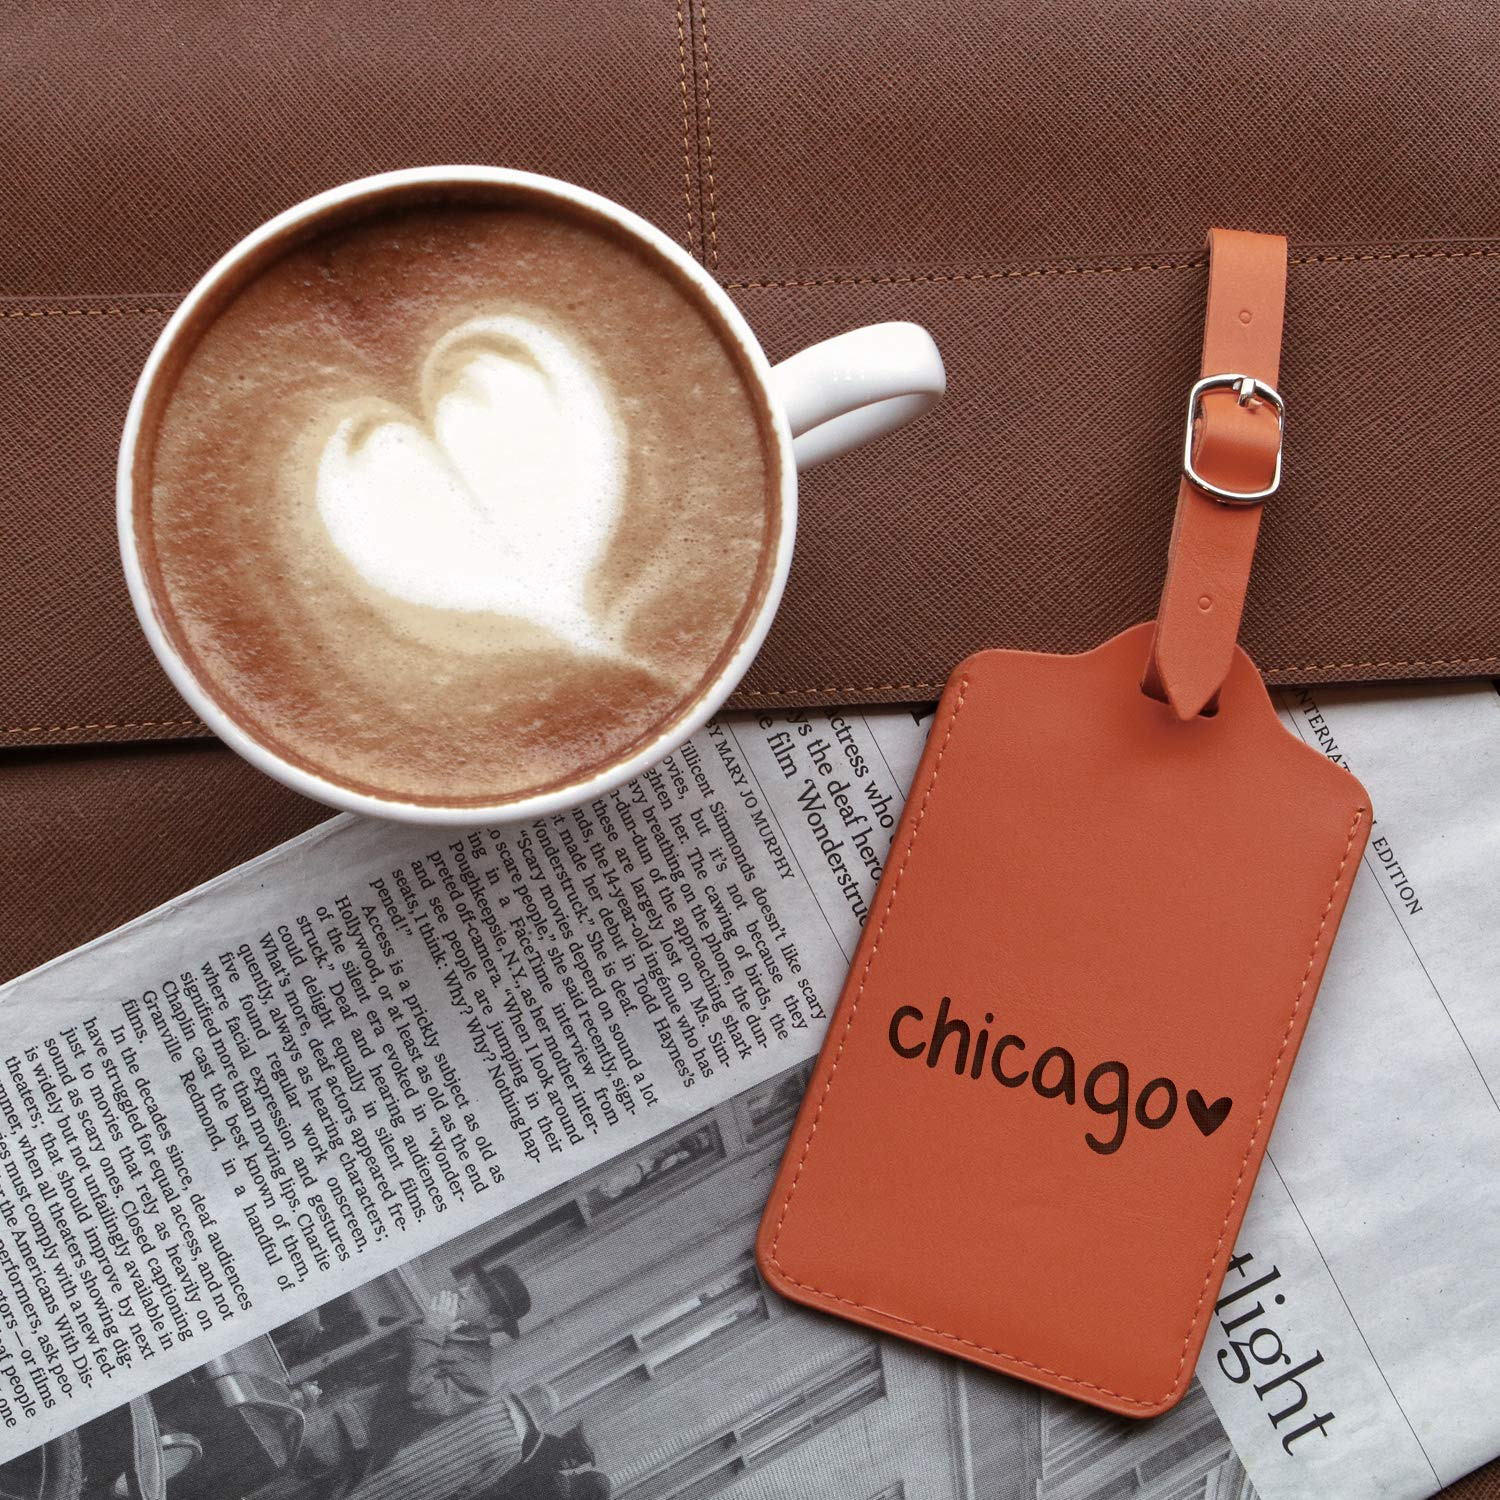 Chicago Love Icon Text Engraved Synthetic Pu Leather Luggage Tag For Any Type Of Luggage Handcrafted By Mastercraftsmen London Tan - Set Of 2 - United States Standard